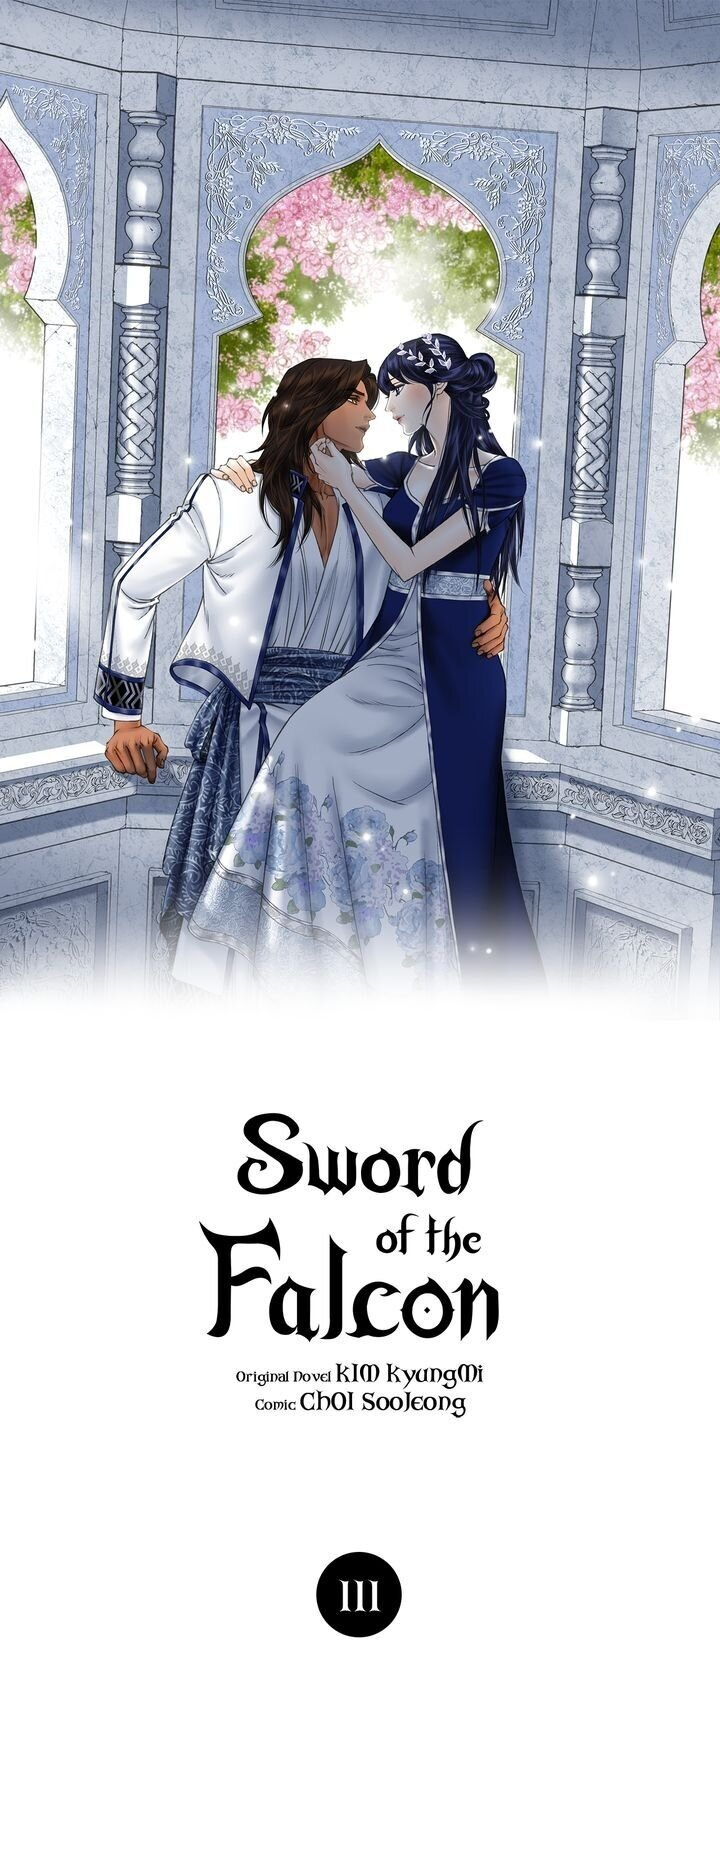 Sword Of The Falcon - chapter 111 - #1